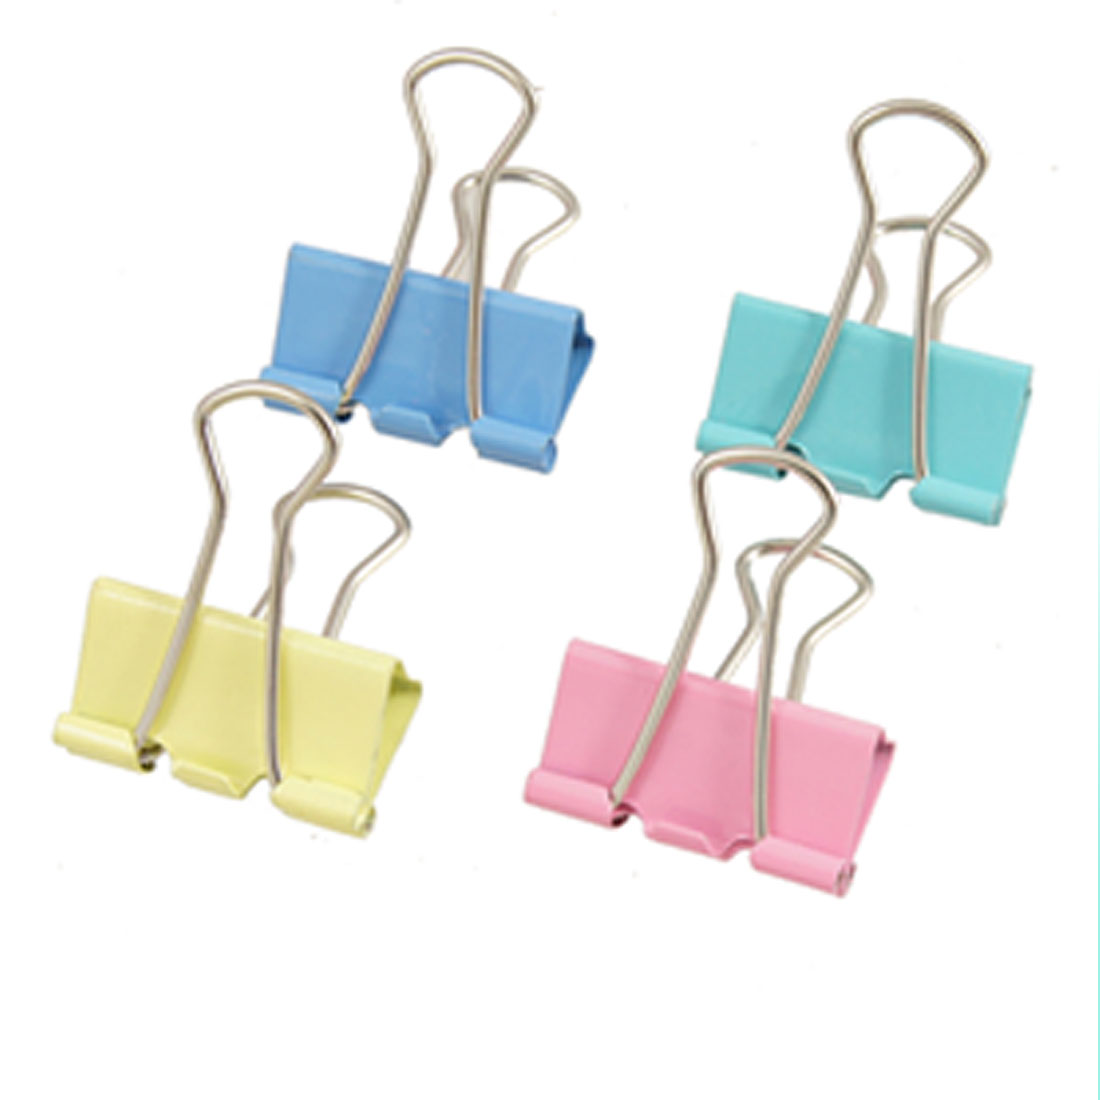 "48 Pcs 1"" Width Metal Assorted Color File Paper Foldback Binder Clips"